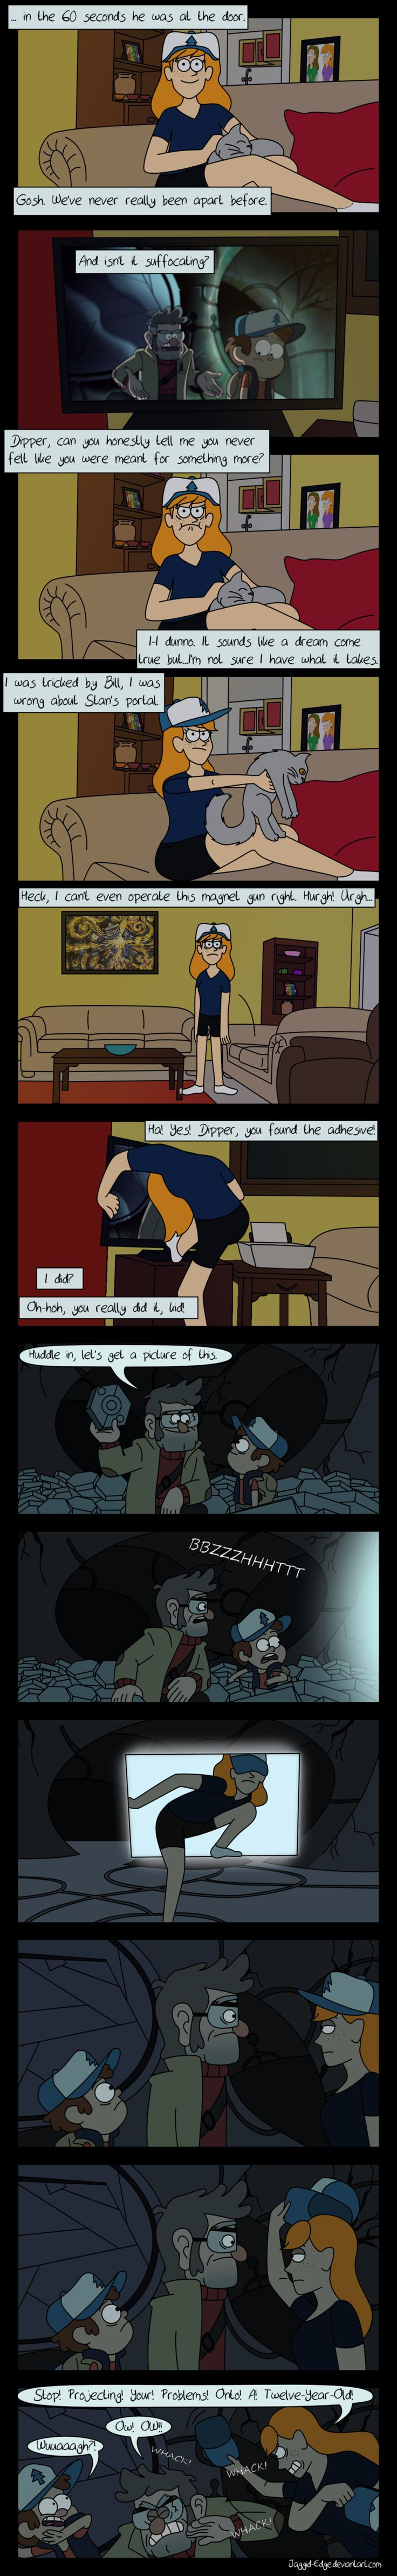 Reaction - Dipper and Mabel Vs. The Future by Jaggid-Edge.deviantart.com on @DeviantArt